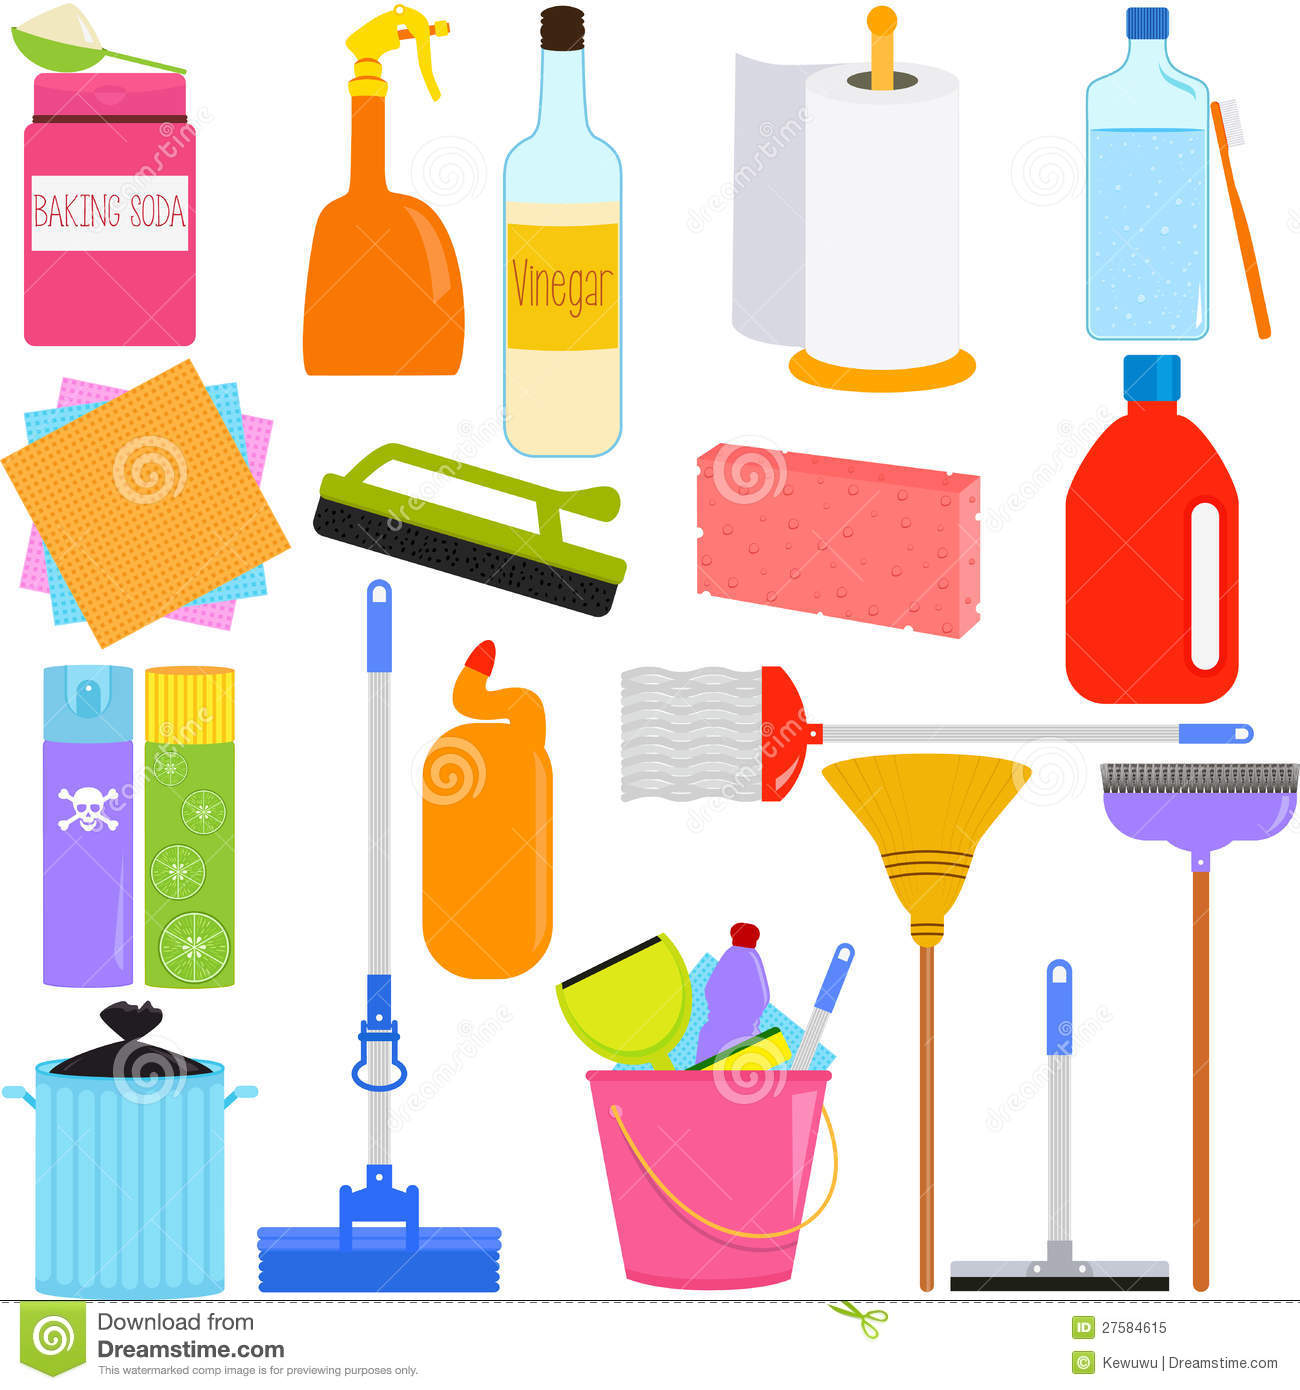 Household Cleaning Equipment Housework Tools and Cleaning